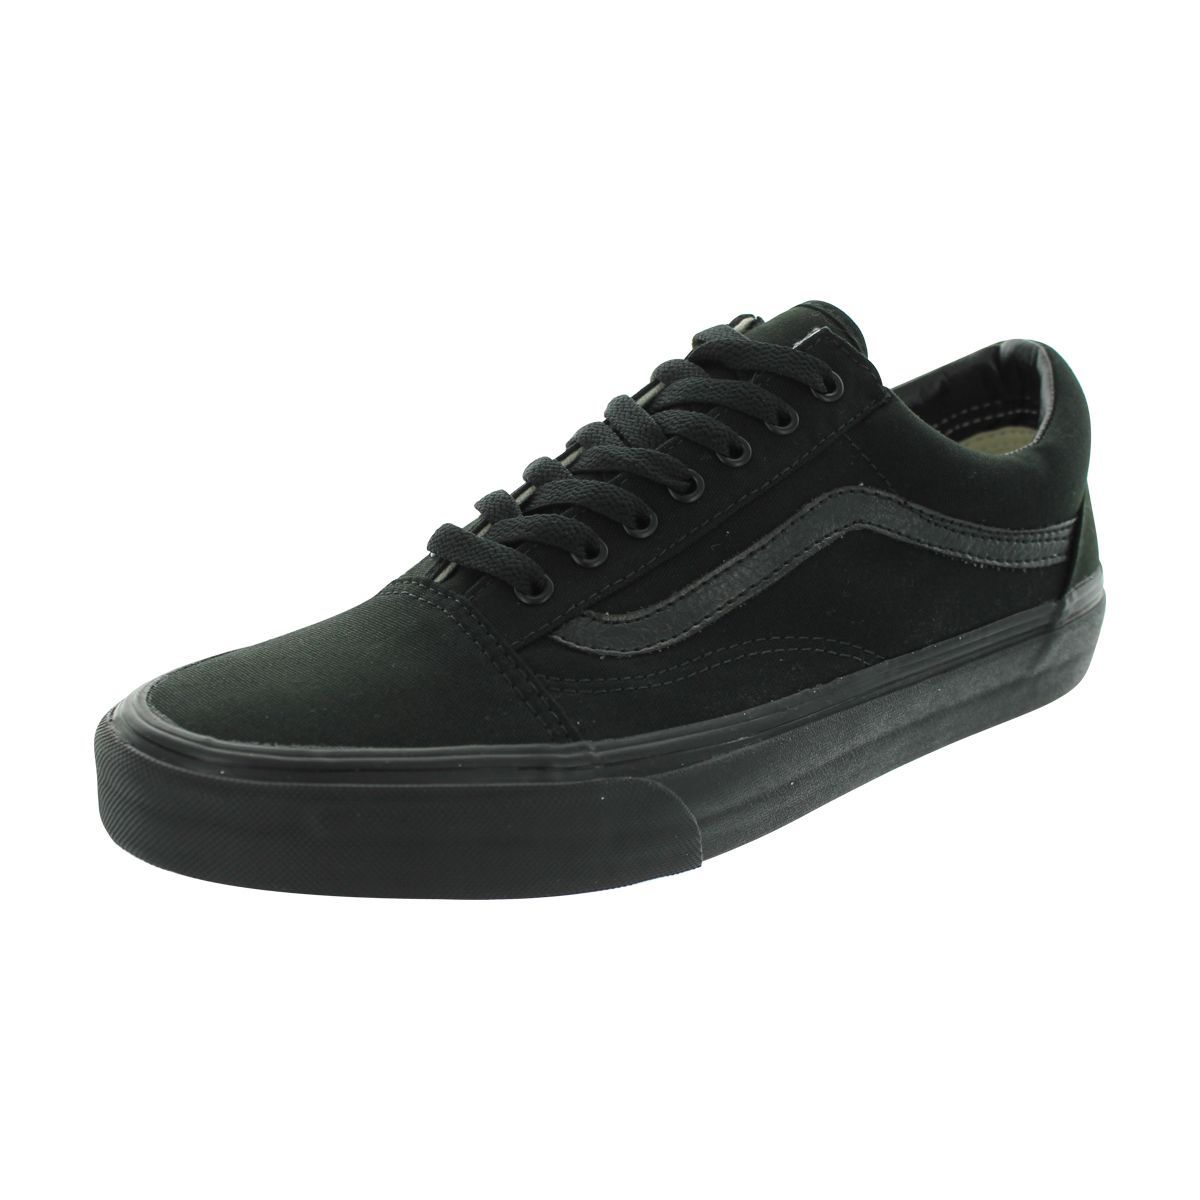 b25c040233 Vans Old Skool Black Canvas Skate Shoes (5)